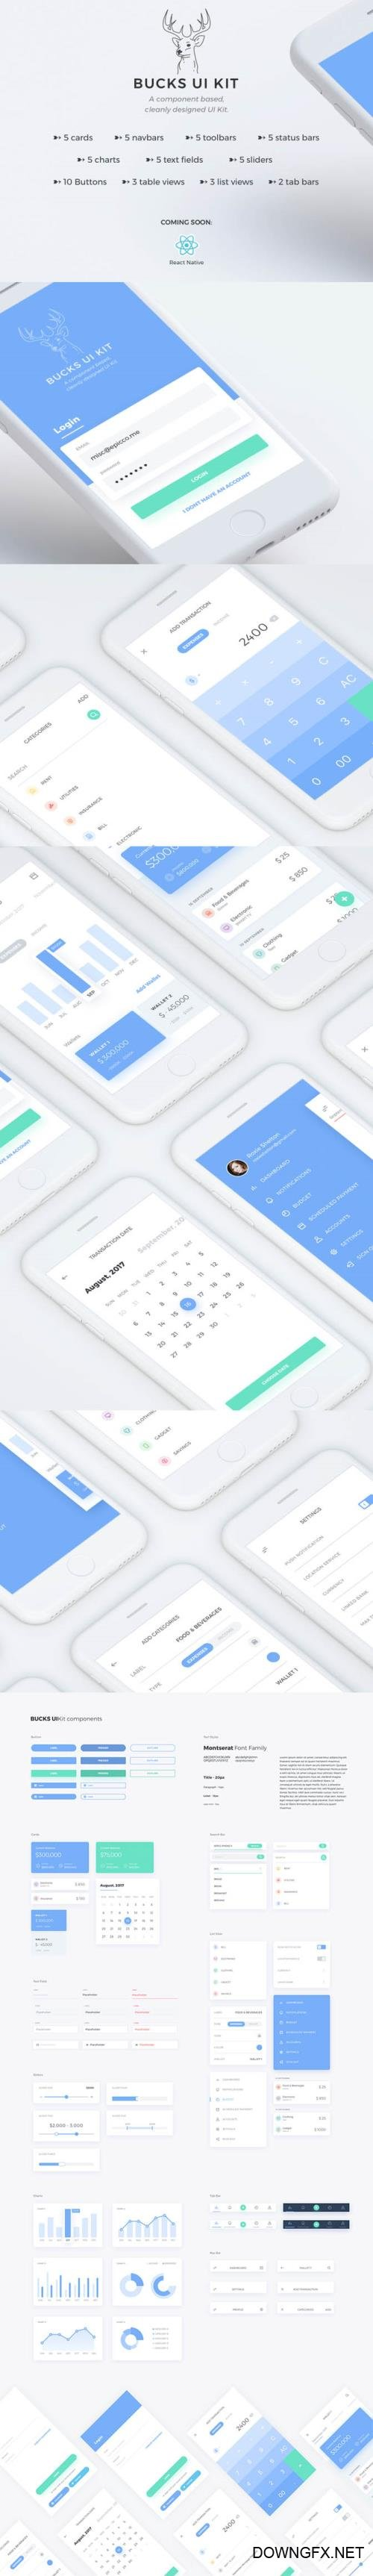 Bucks UI Kit - Finance inspired iOS mobile UI Kit compatible with Sketch